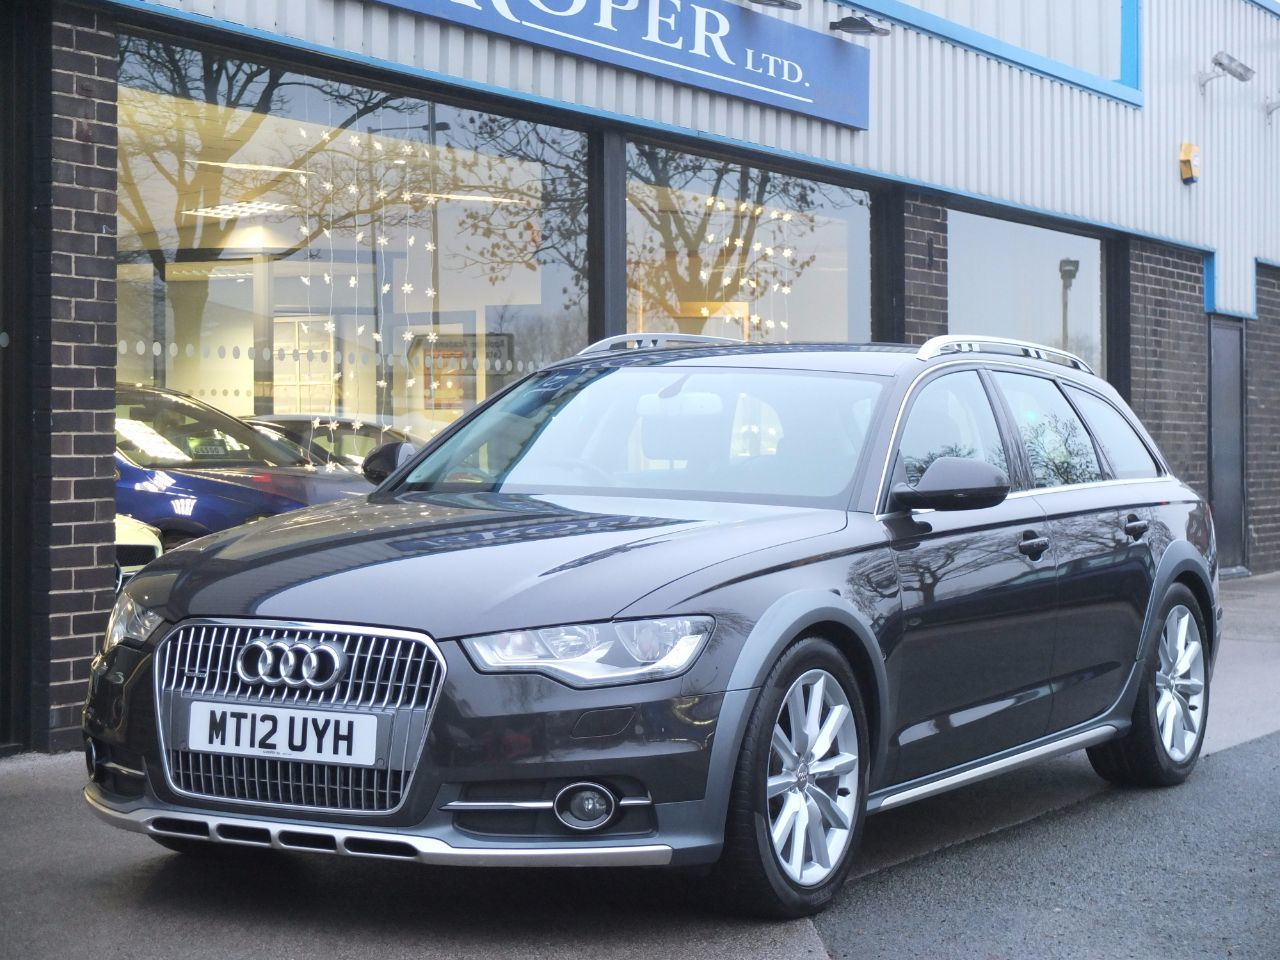 Audi A6 Allroad 3.0 TDI quattro 204ps S Tronic Estate Diesel Oolong Grey MetallicAudi A6 Allroad 3.0 TDI quattro 204ps S Tronic Estate Diesel Oolong Grey Metallic at fa Roper Ltd Bradford